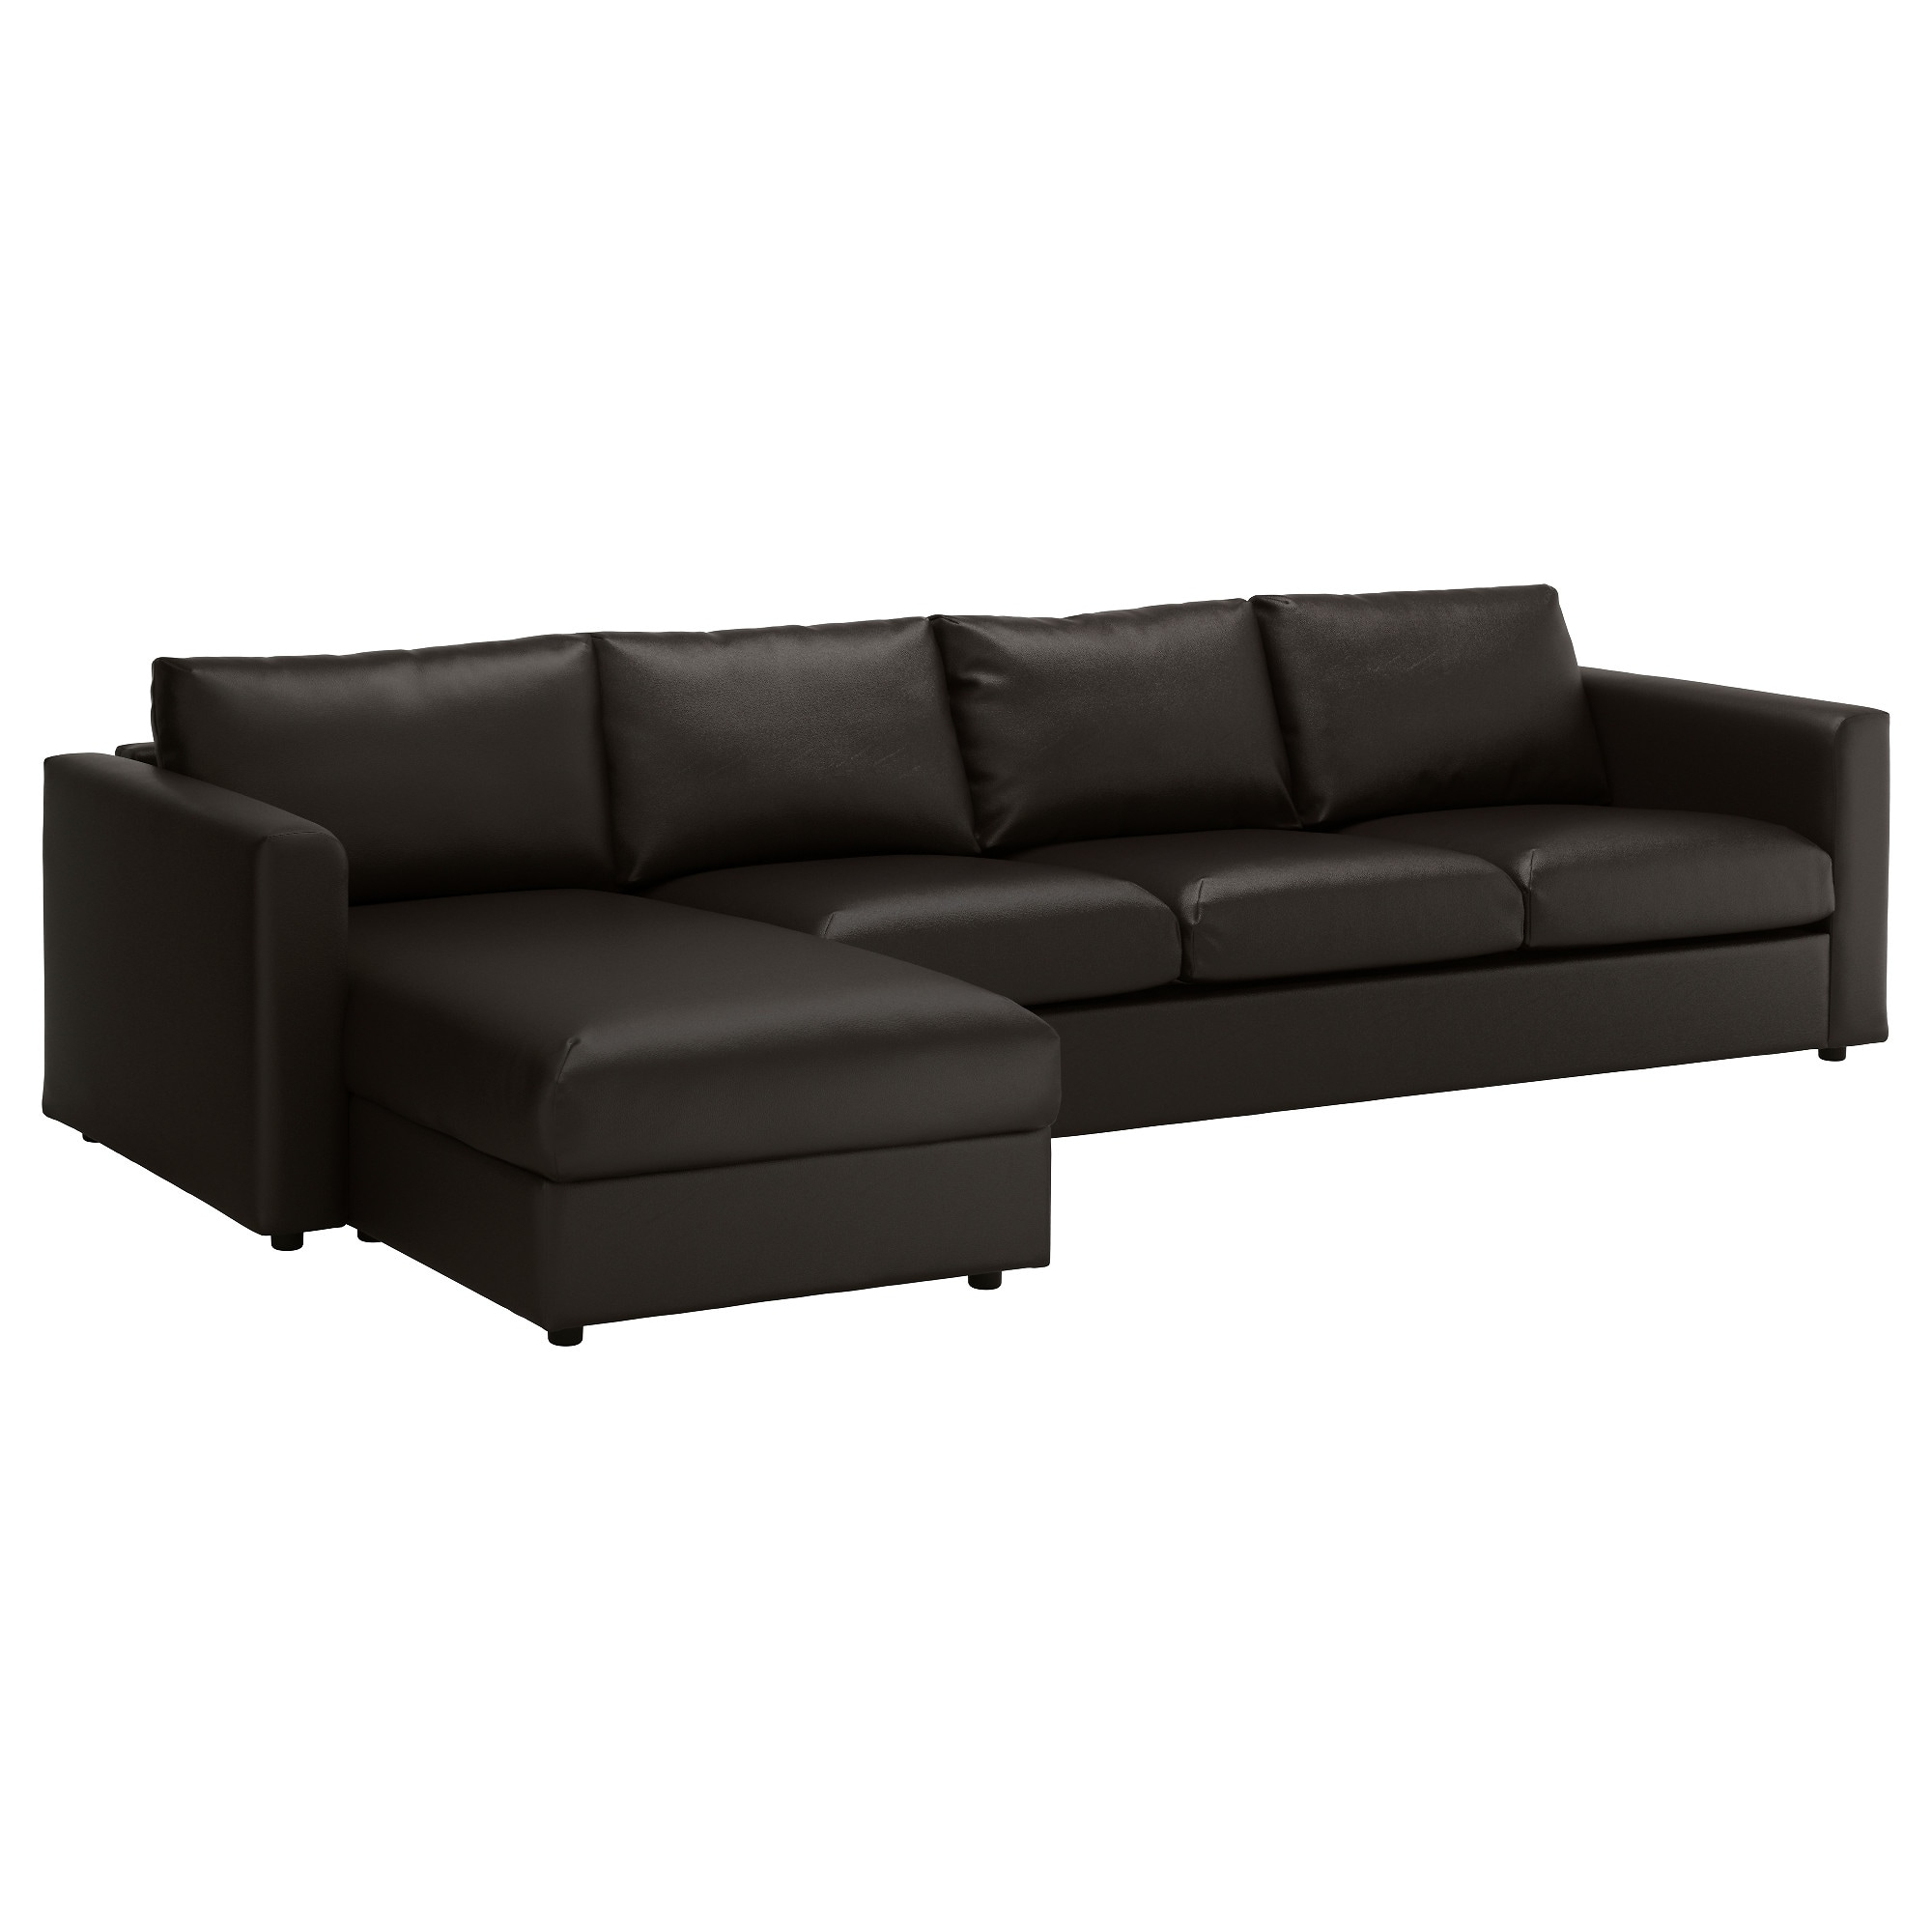 Sofas Ikea Baratos Dddy Vimle sofà 4 Lugares C Chaise Longue Gunnared Bege Ikea